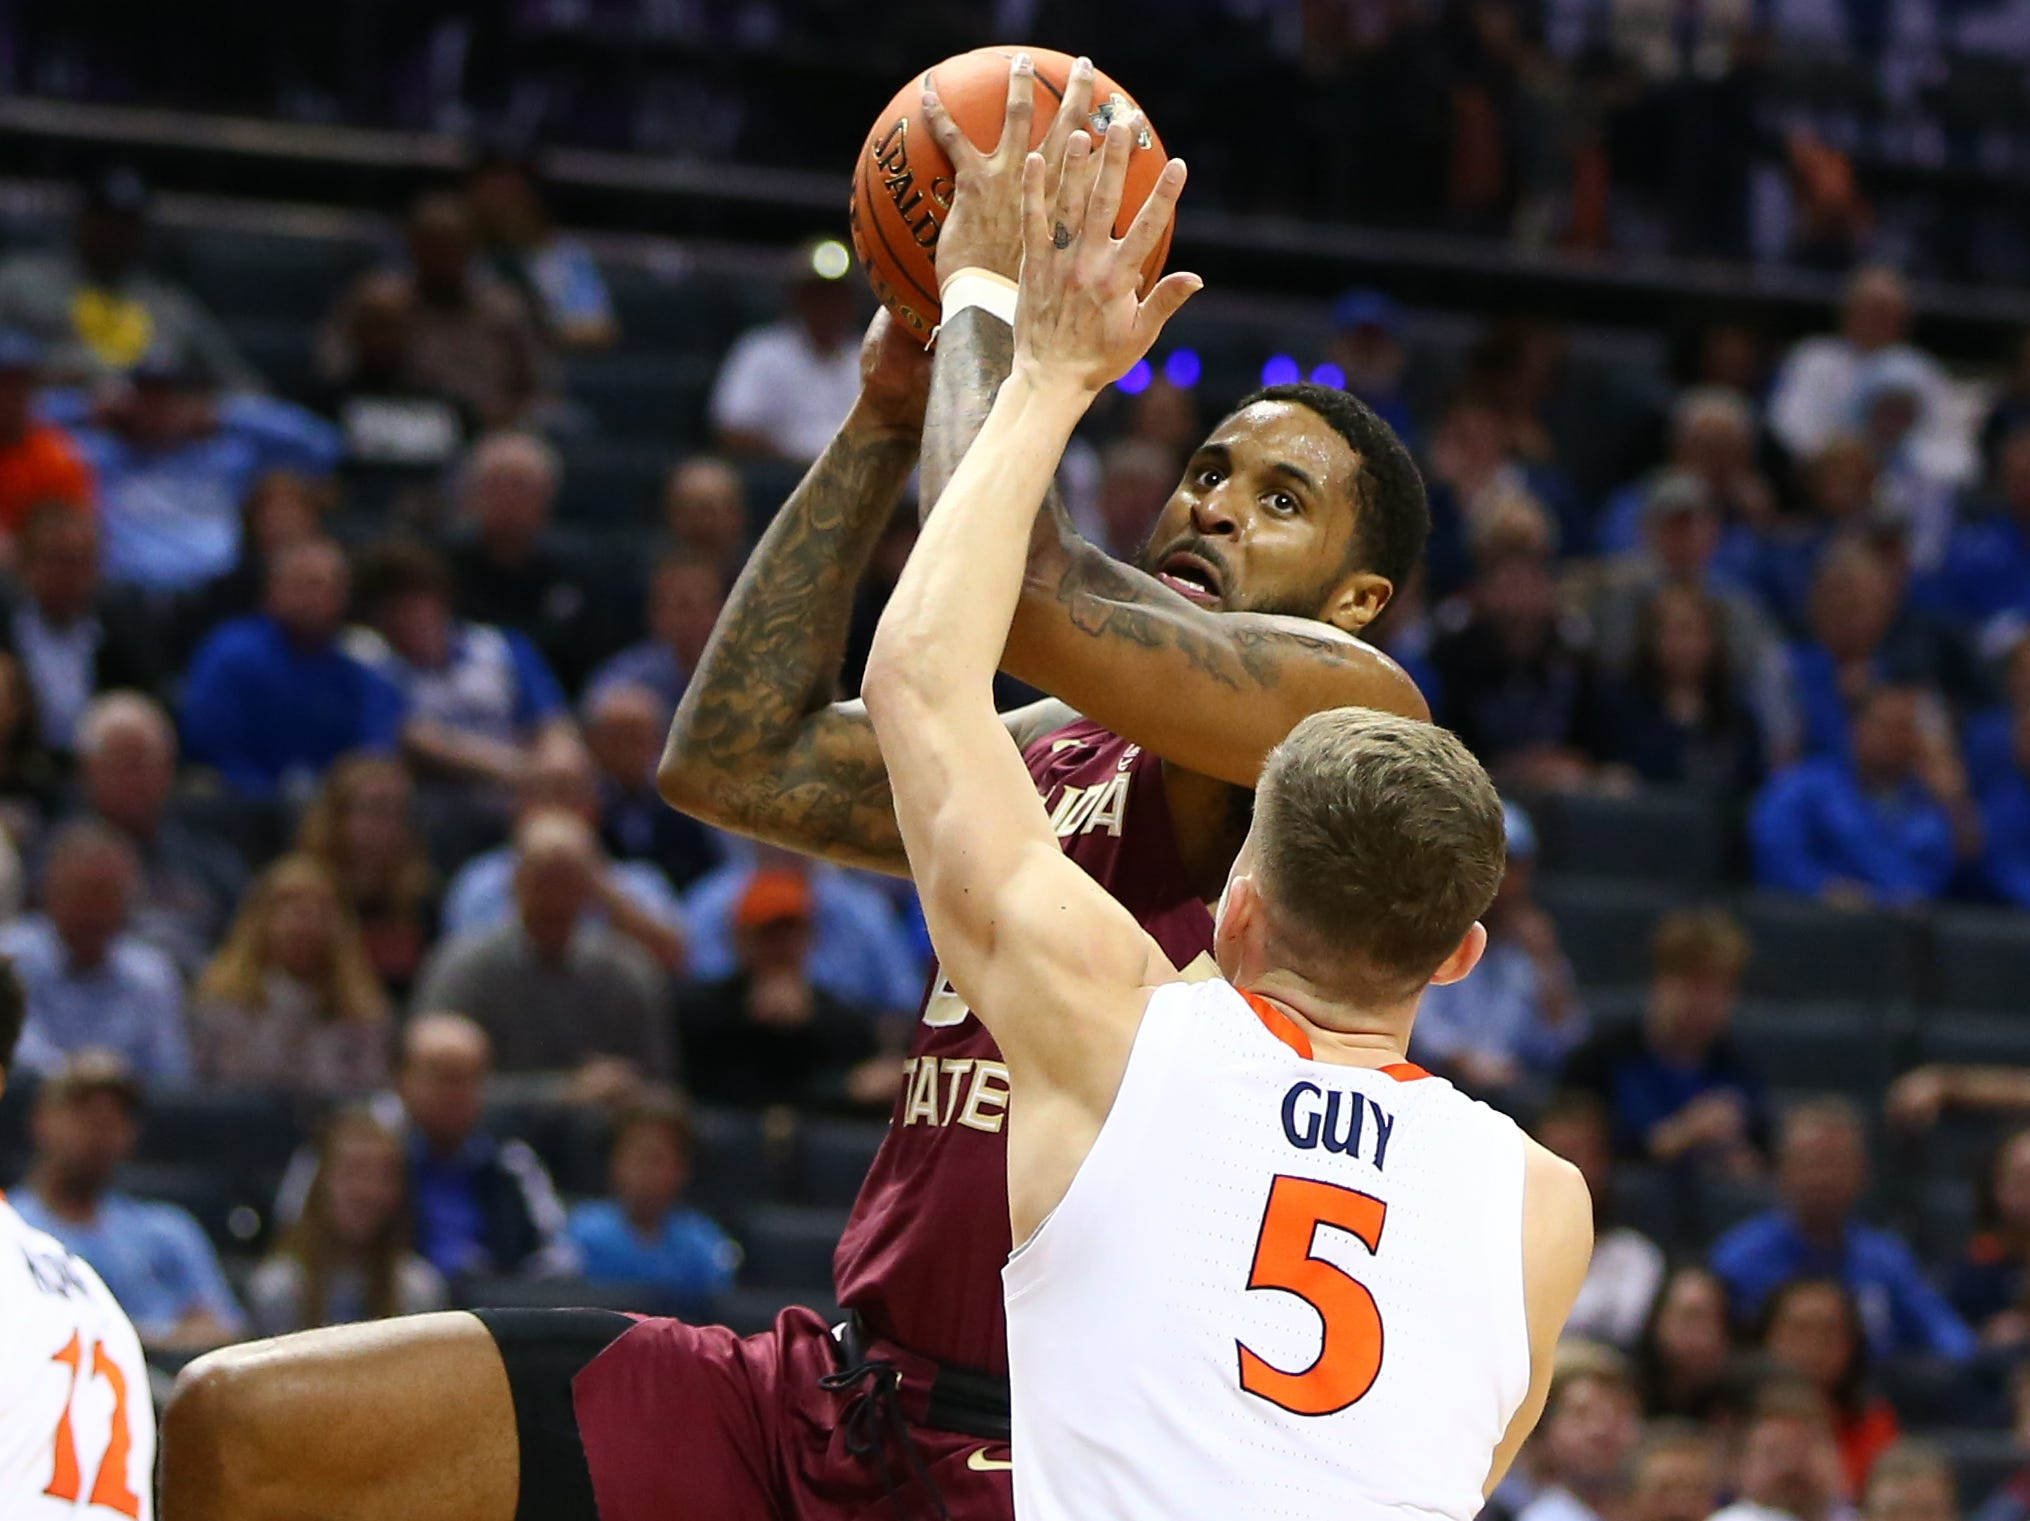 Mar 15, 2019; Charlotte, NC, USA; Florida State Seminoles forward Phil Cofer (0) shoots the ball against Virginia Cavaliers guard Kyle Guy (5) in the first half in the ACC conference tournament at Spectrum Center. Mandatory Credit: Jeremy Brevard-USA TODAY Sports